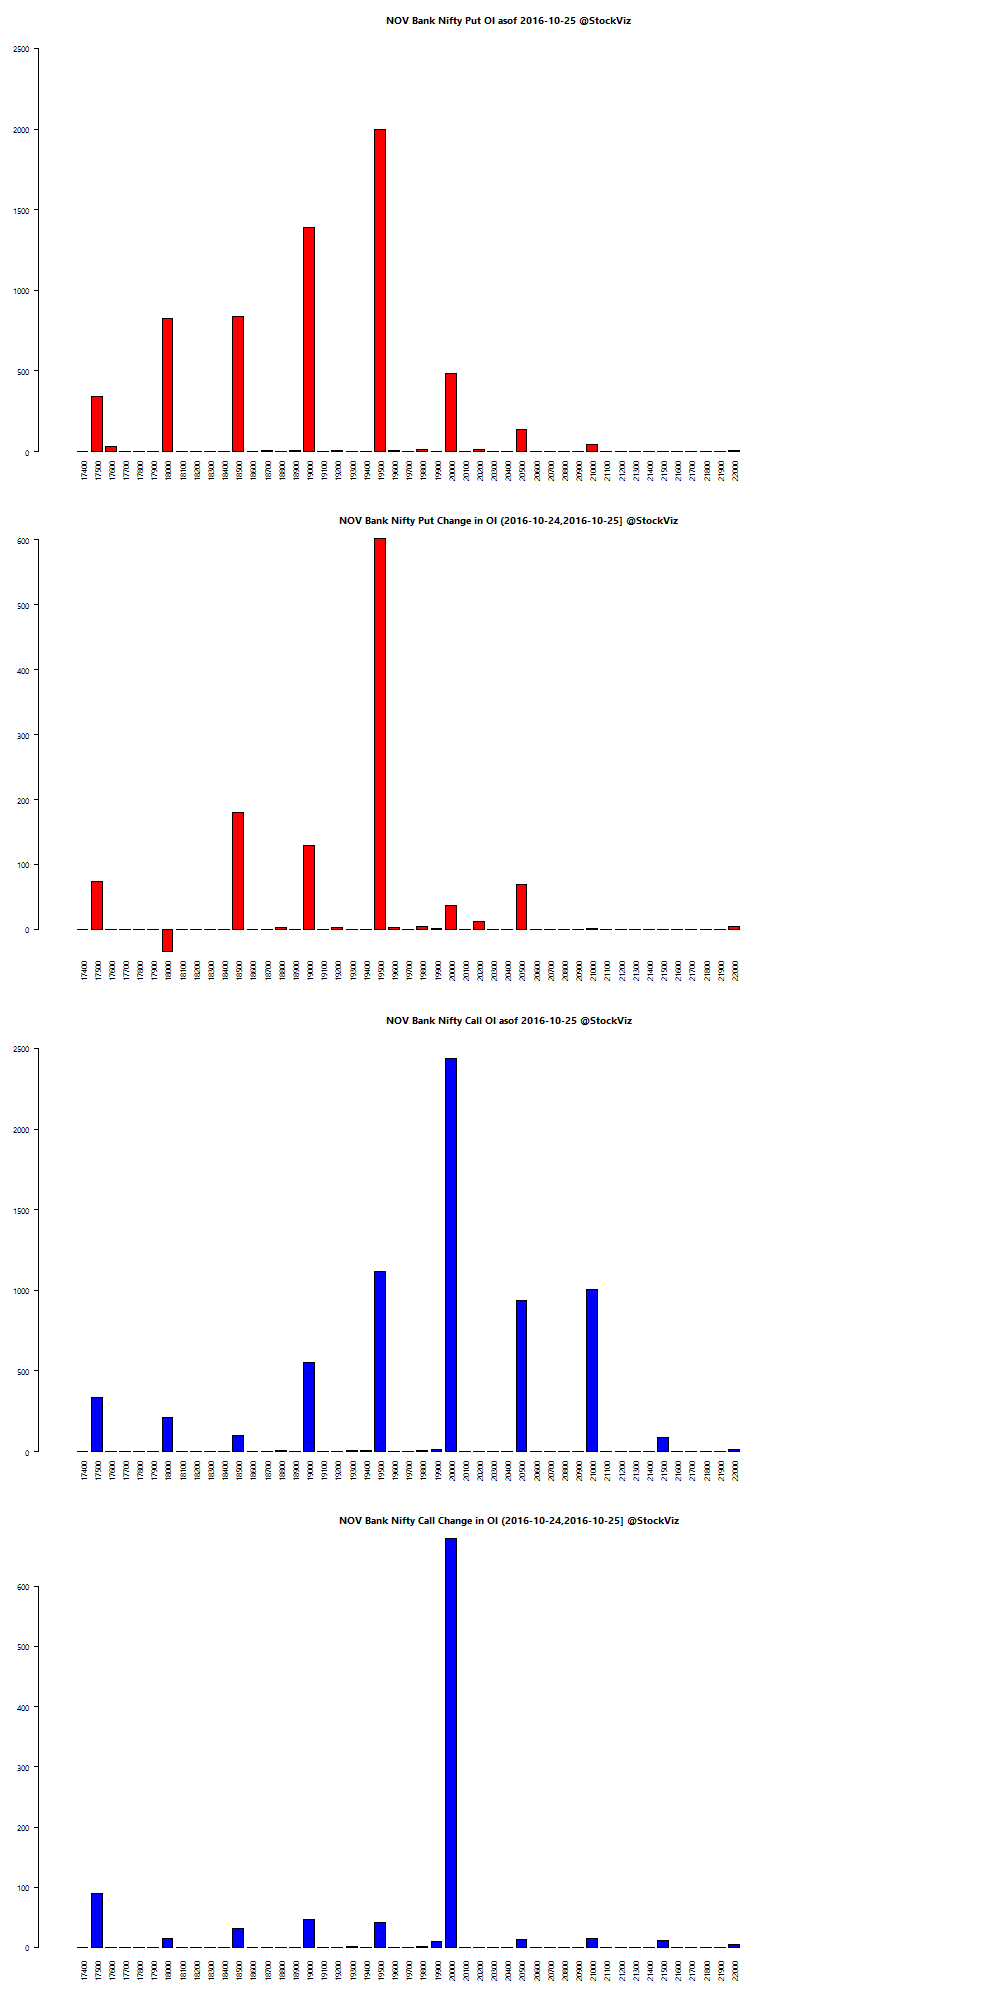 NOV BANKNIFTY OI chart